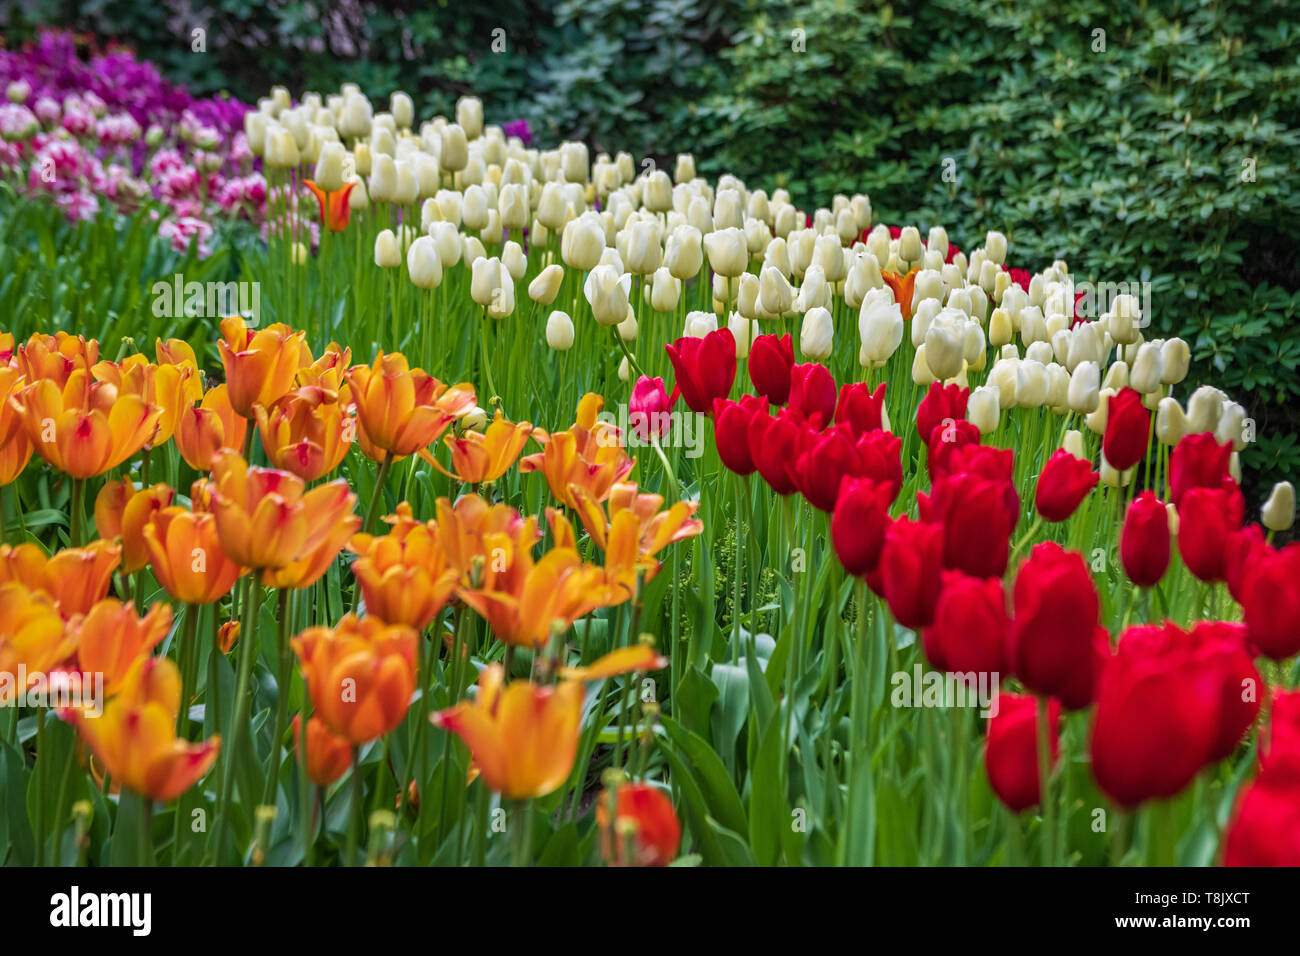 Multi-colored tulips & tulip bed - Keukenhof Gardens - spring flowers in Holland - Tulips in the Netherlands - Tulipa species - Liliaceae family - Stock Image